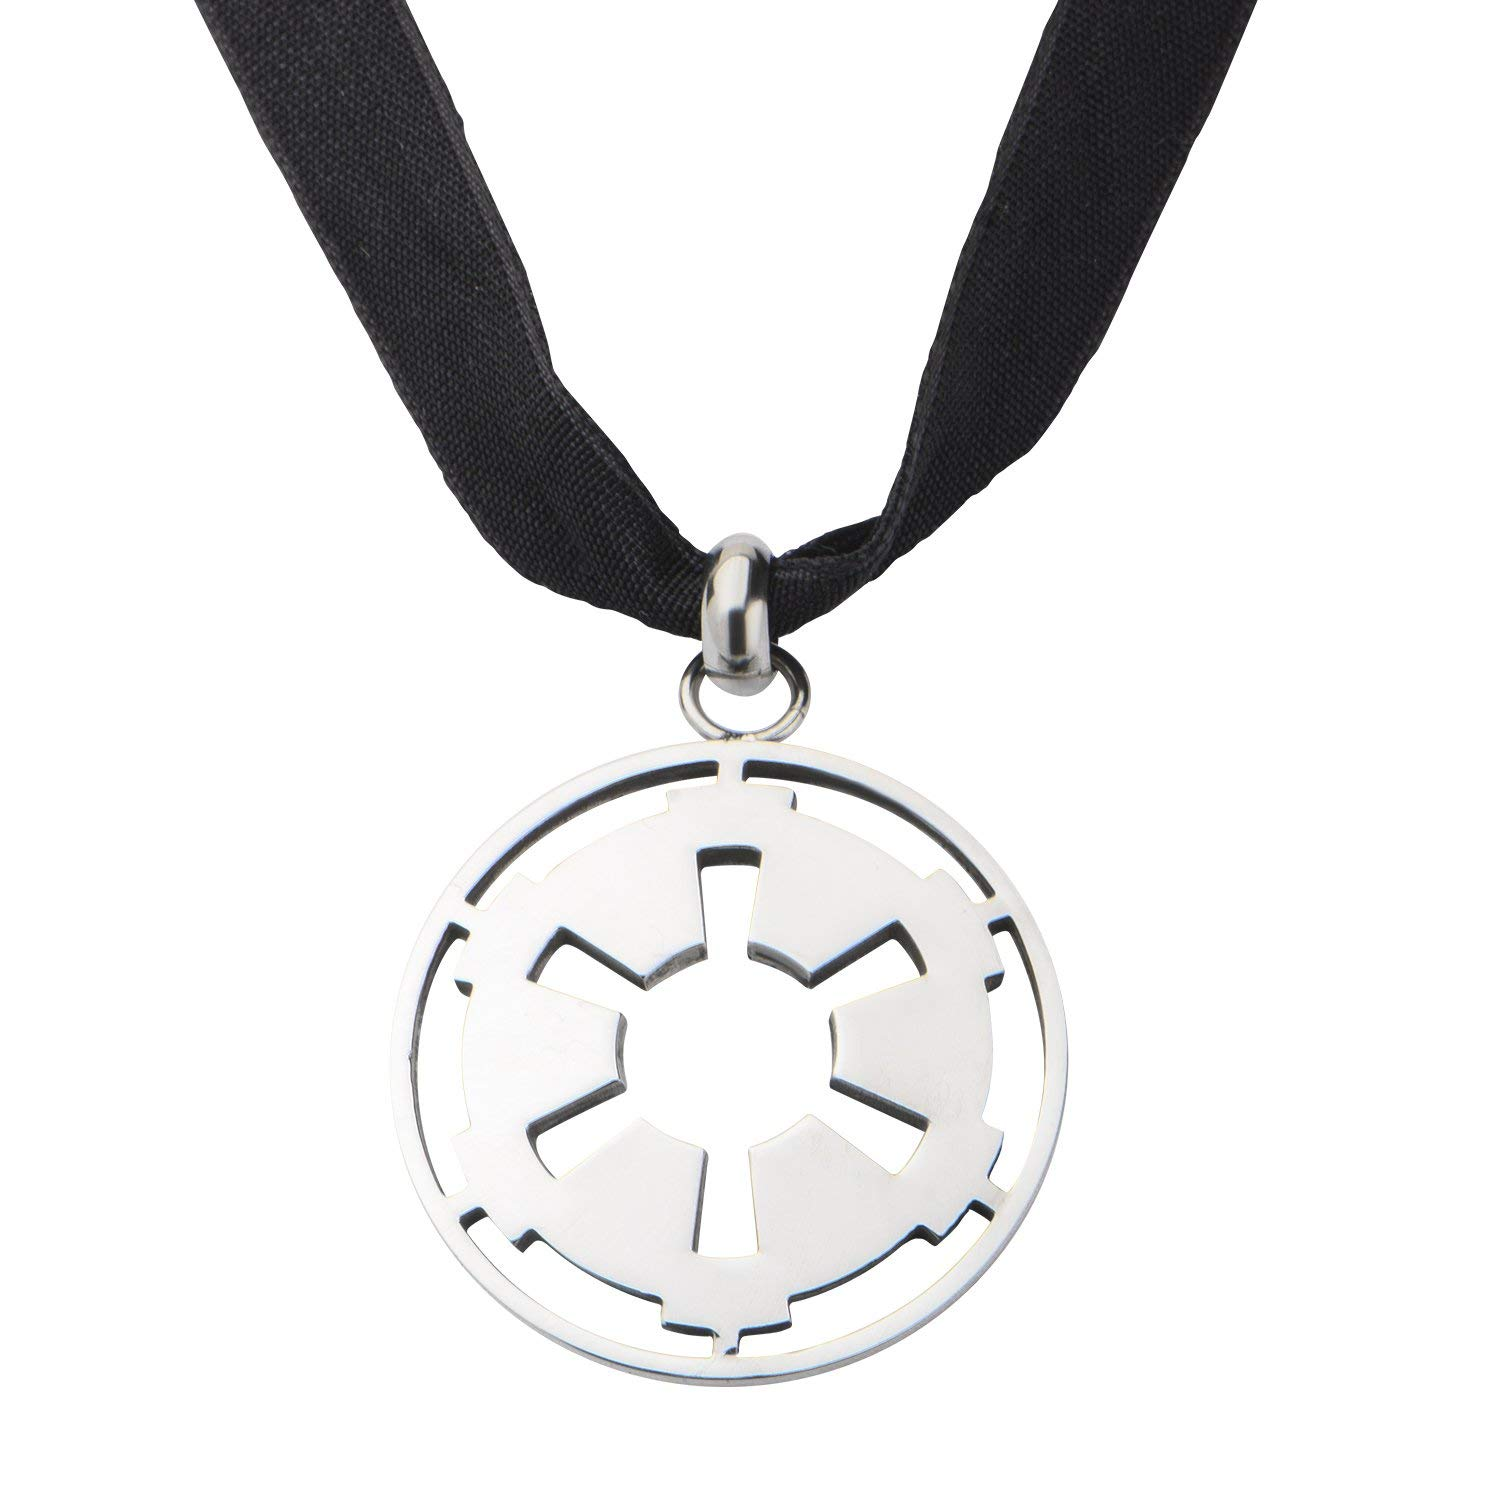 Body Vibe x Star Wars Empire Symbol Velvet Choker Necklace on Amazon